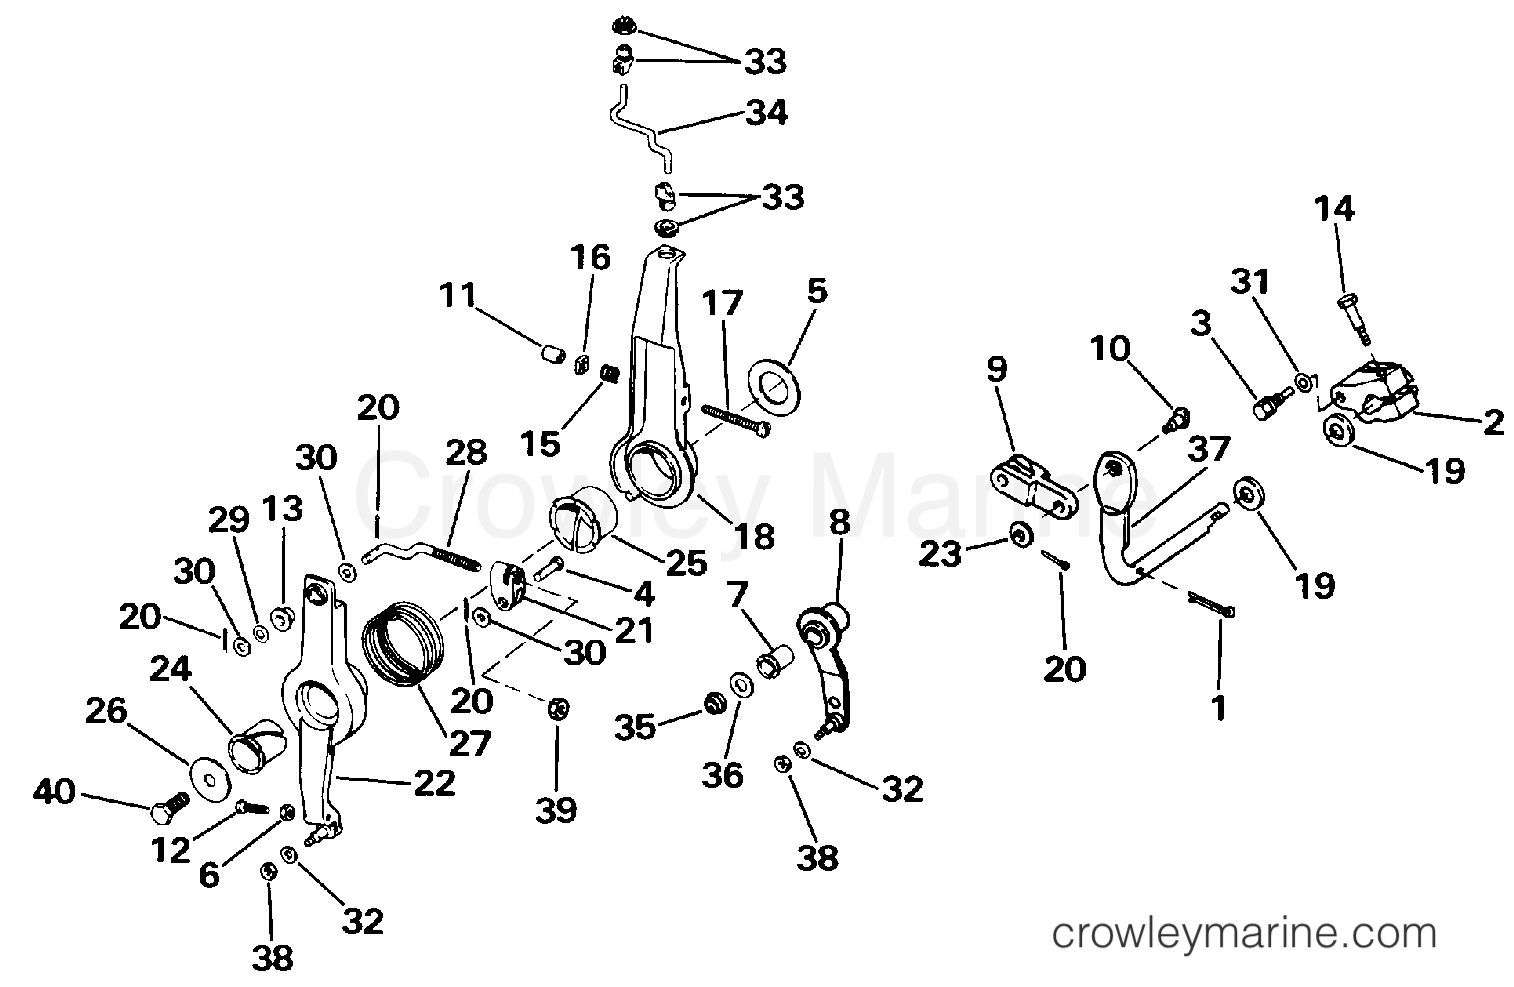 Omc Outboard Linkage Diagram Schematics Wiring Diagrams Brp Evinrude Ignition Switch Throttle Shift 1986 Outboards 150